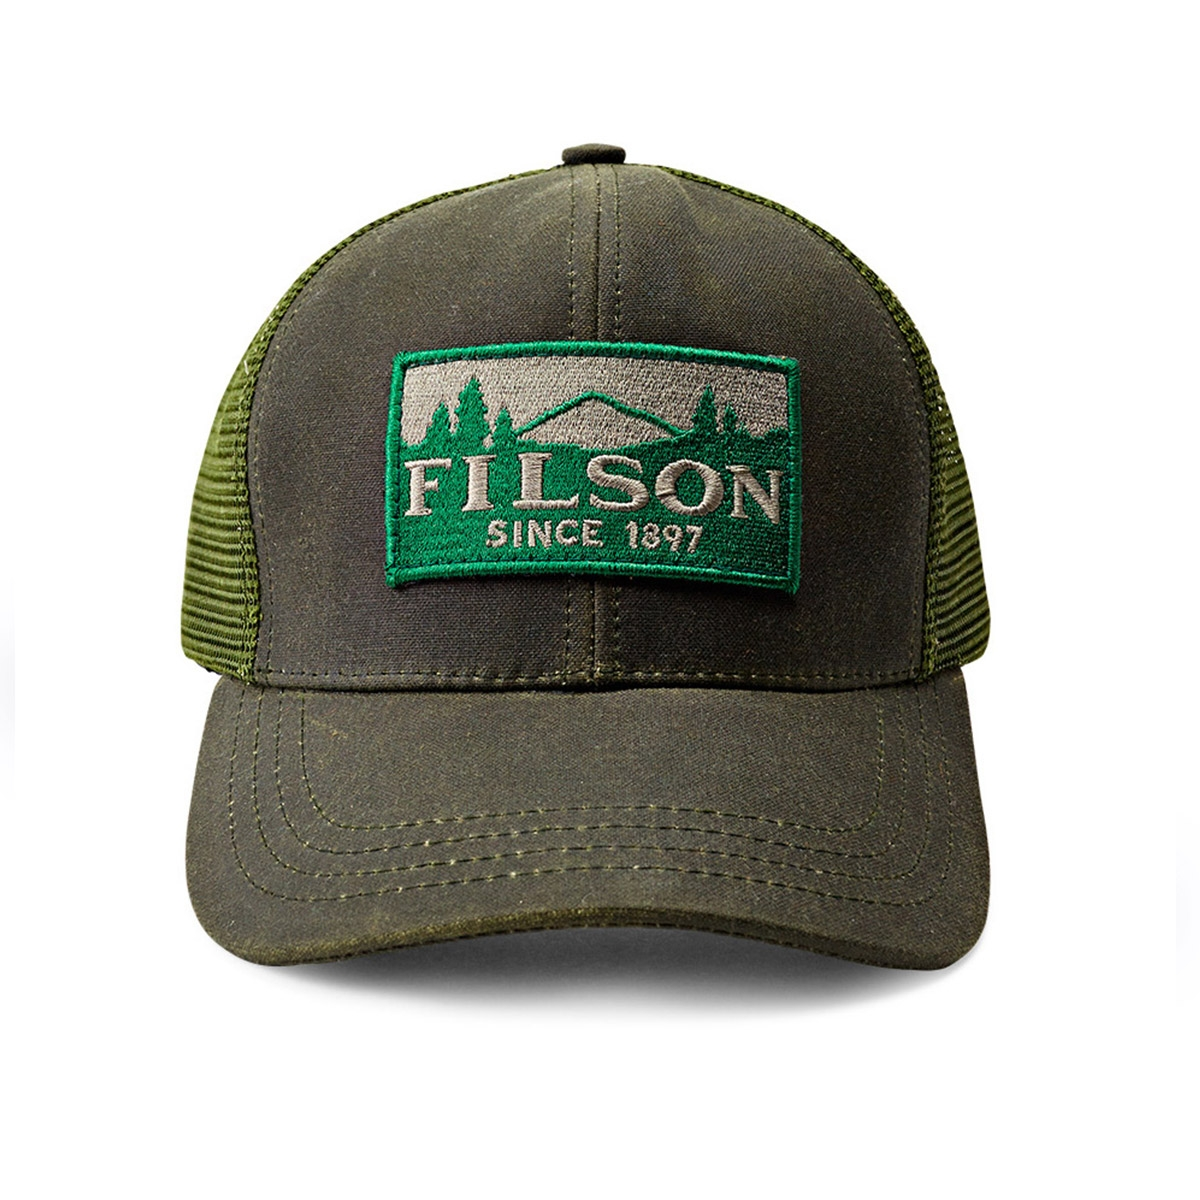 Filson Logger Mesh Cap 11030237-Otter Green, durable cap made of iconic, water-repellent Tin Cloth